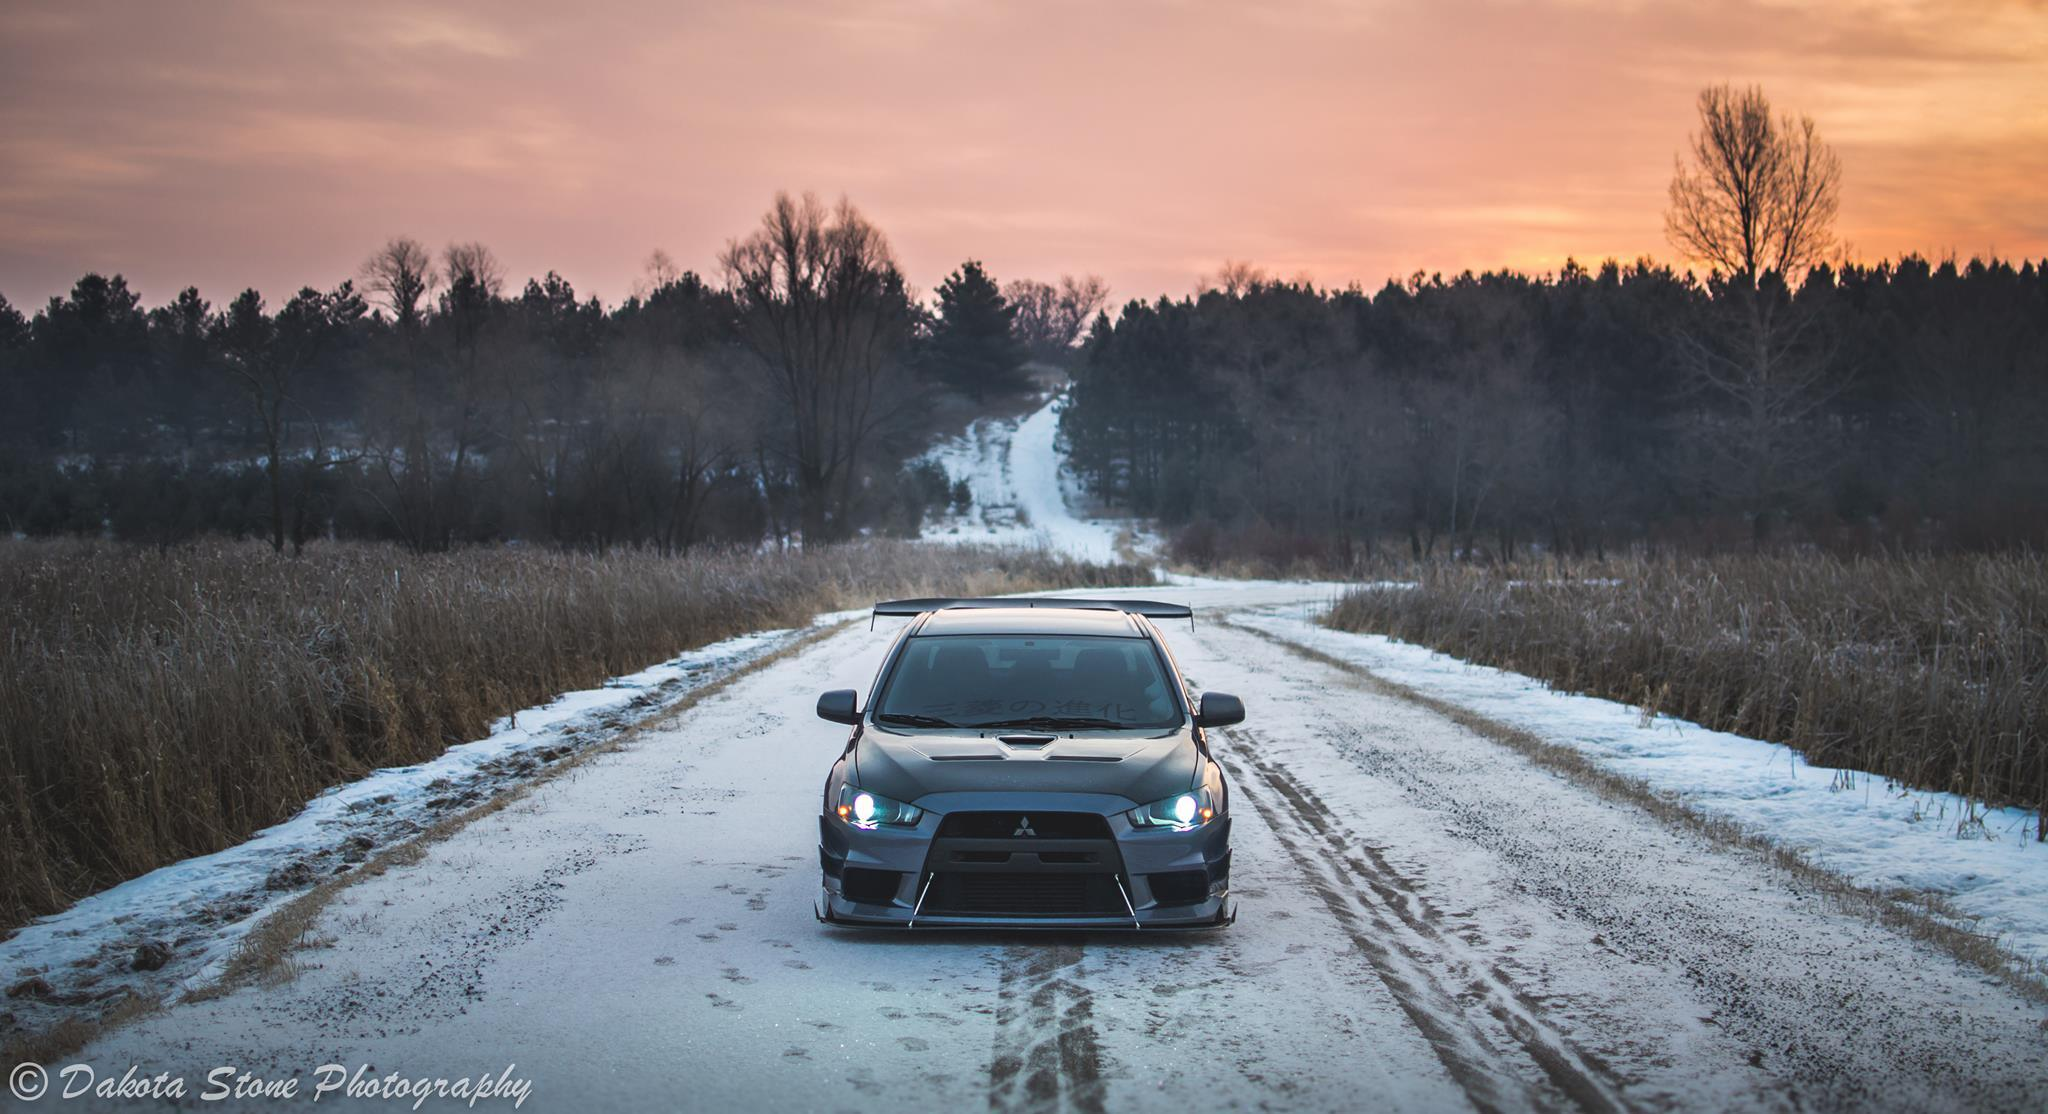 Lowered Evo in the snow